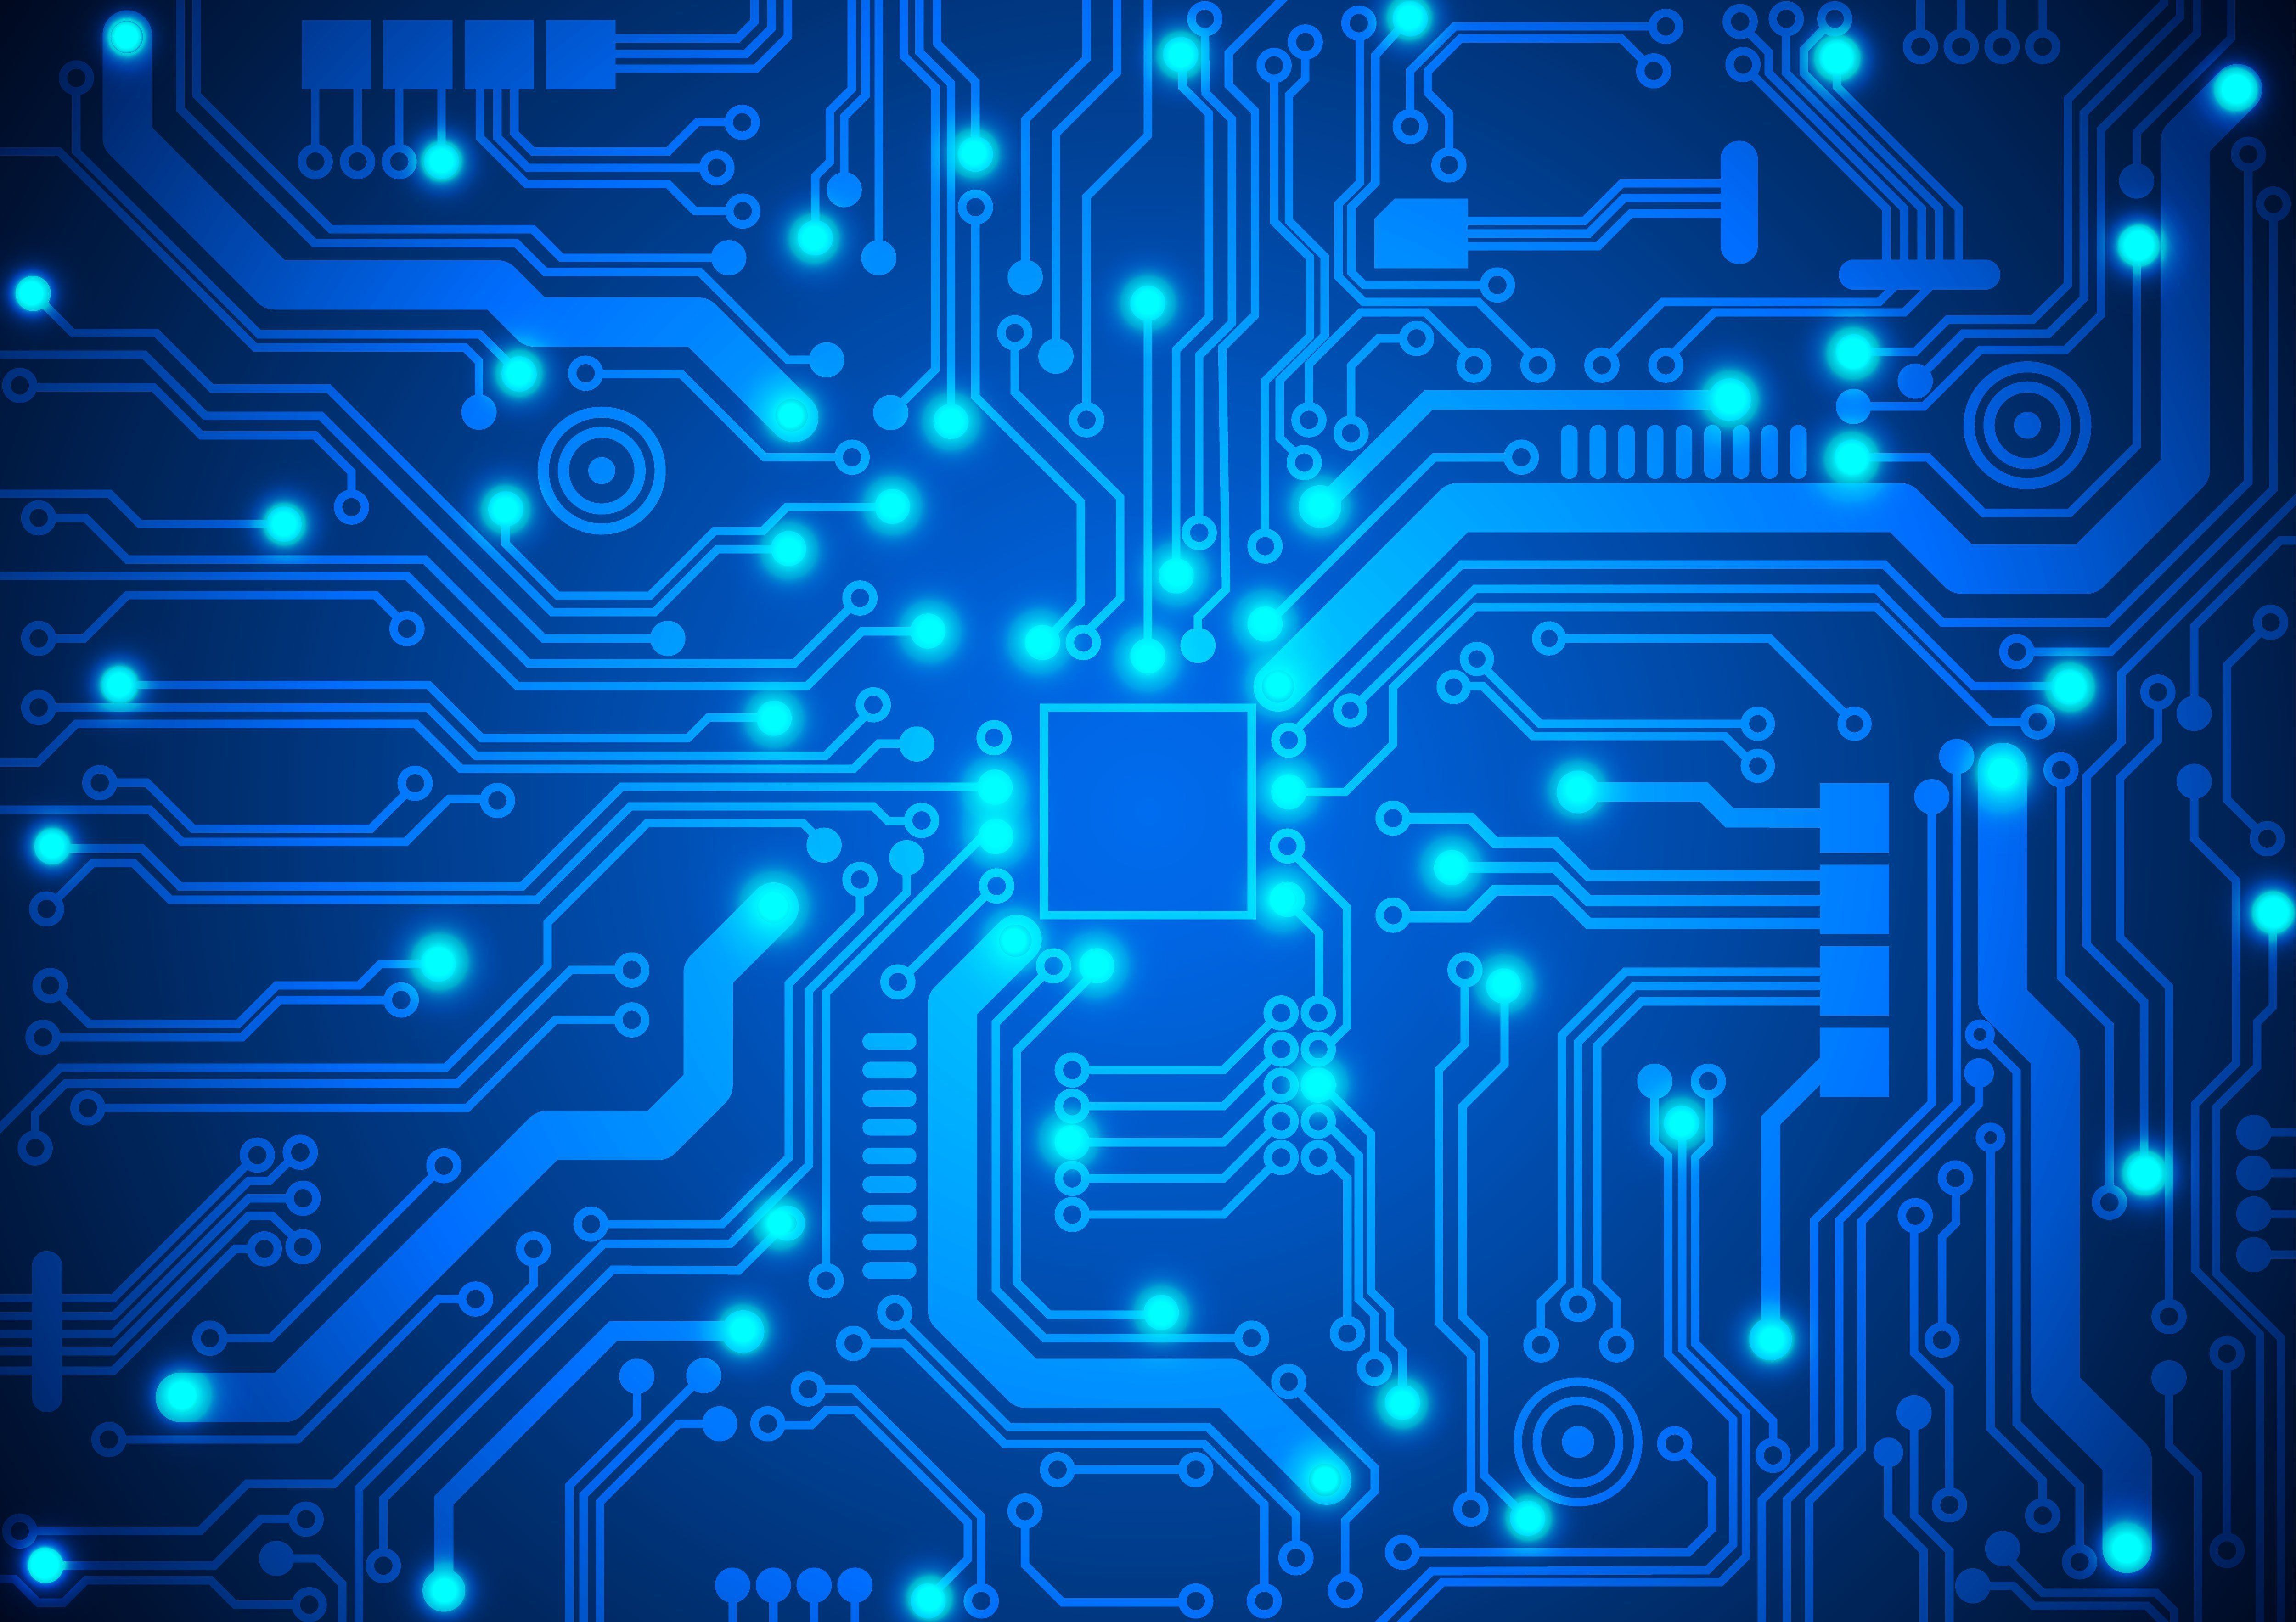 50 Computer Technology Wallpapers Download At Wallpaperbro Electronics Wallpaper Technology Wallpaper Electronic Engineering